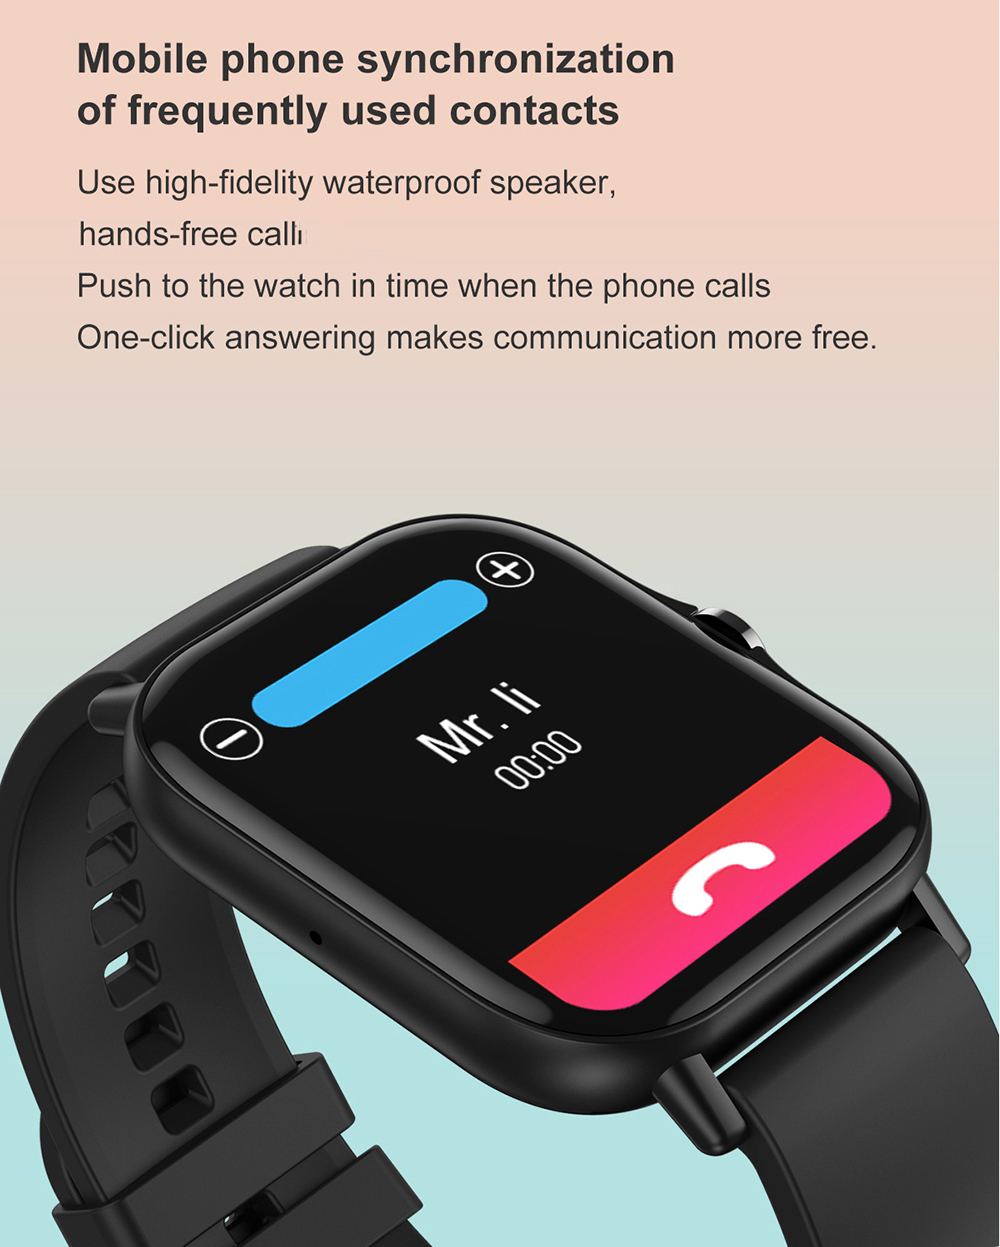 H32f910a49d104a029e60ec0da390bb50Q For Xiaomi IOS Apple Phone 1.78inch Smart Watch Android Men IP68 Waterproof Full Touch Woman Smartwatch Women 2021 Answer Call